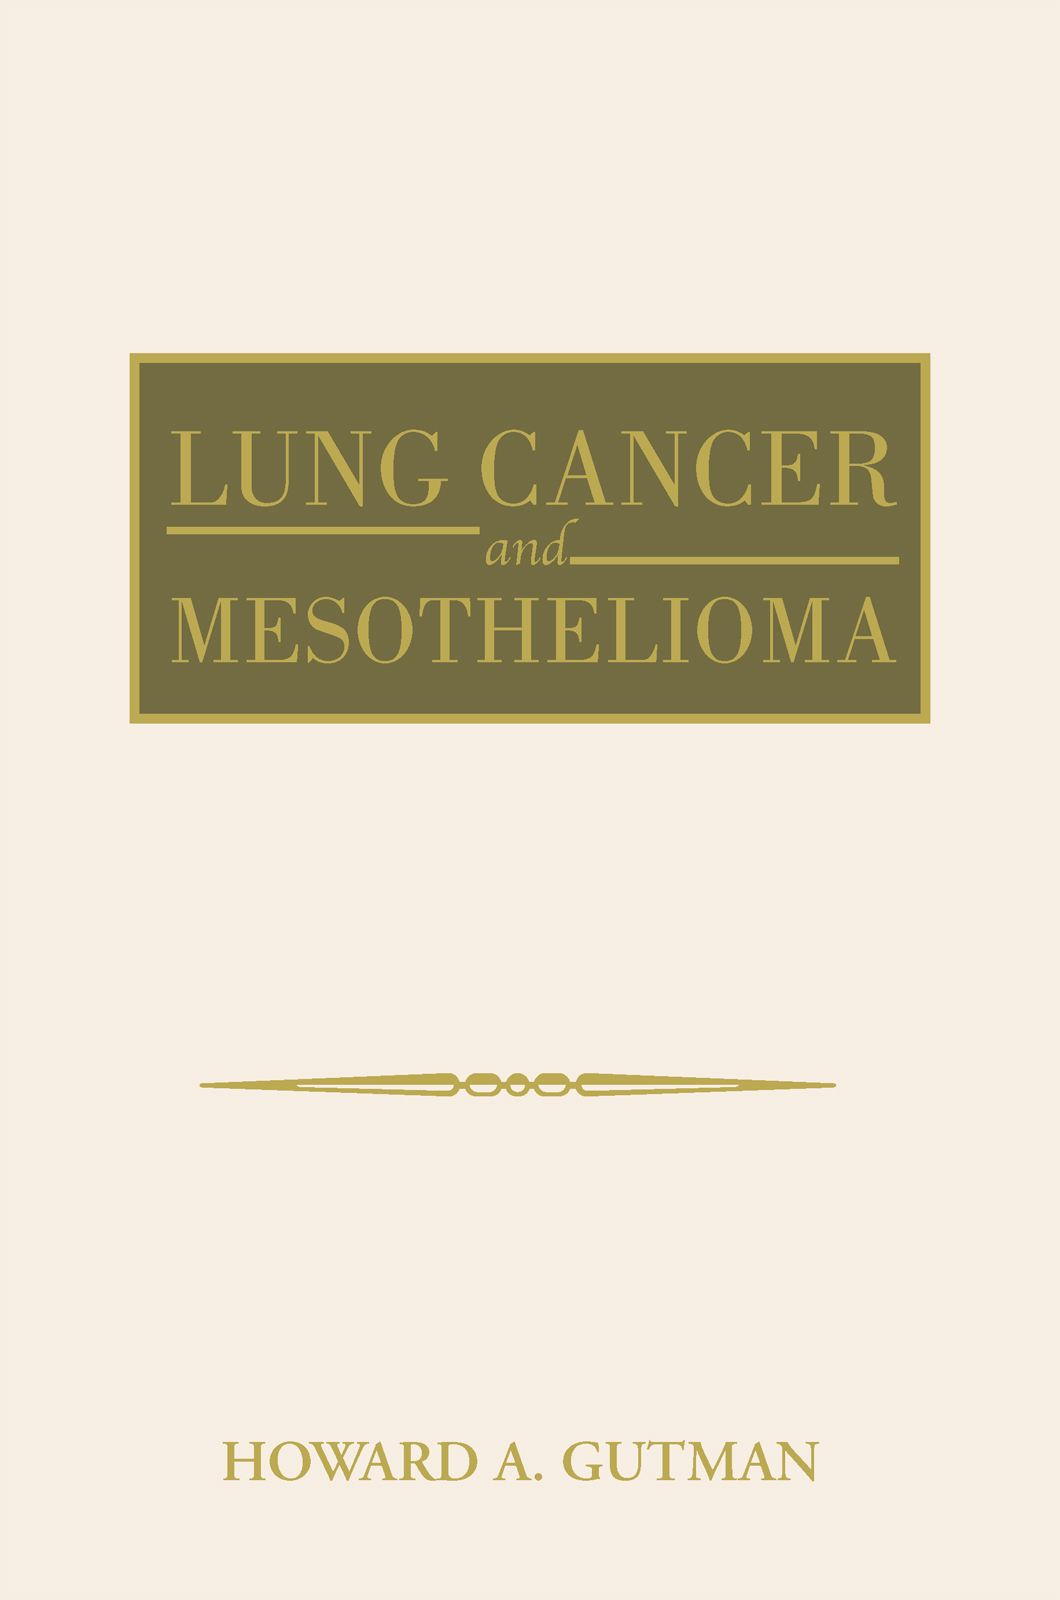 Lung Cancer and Mesothelioma